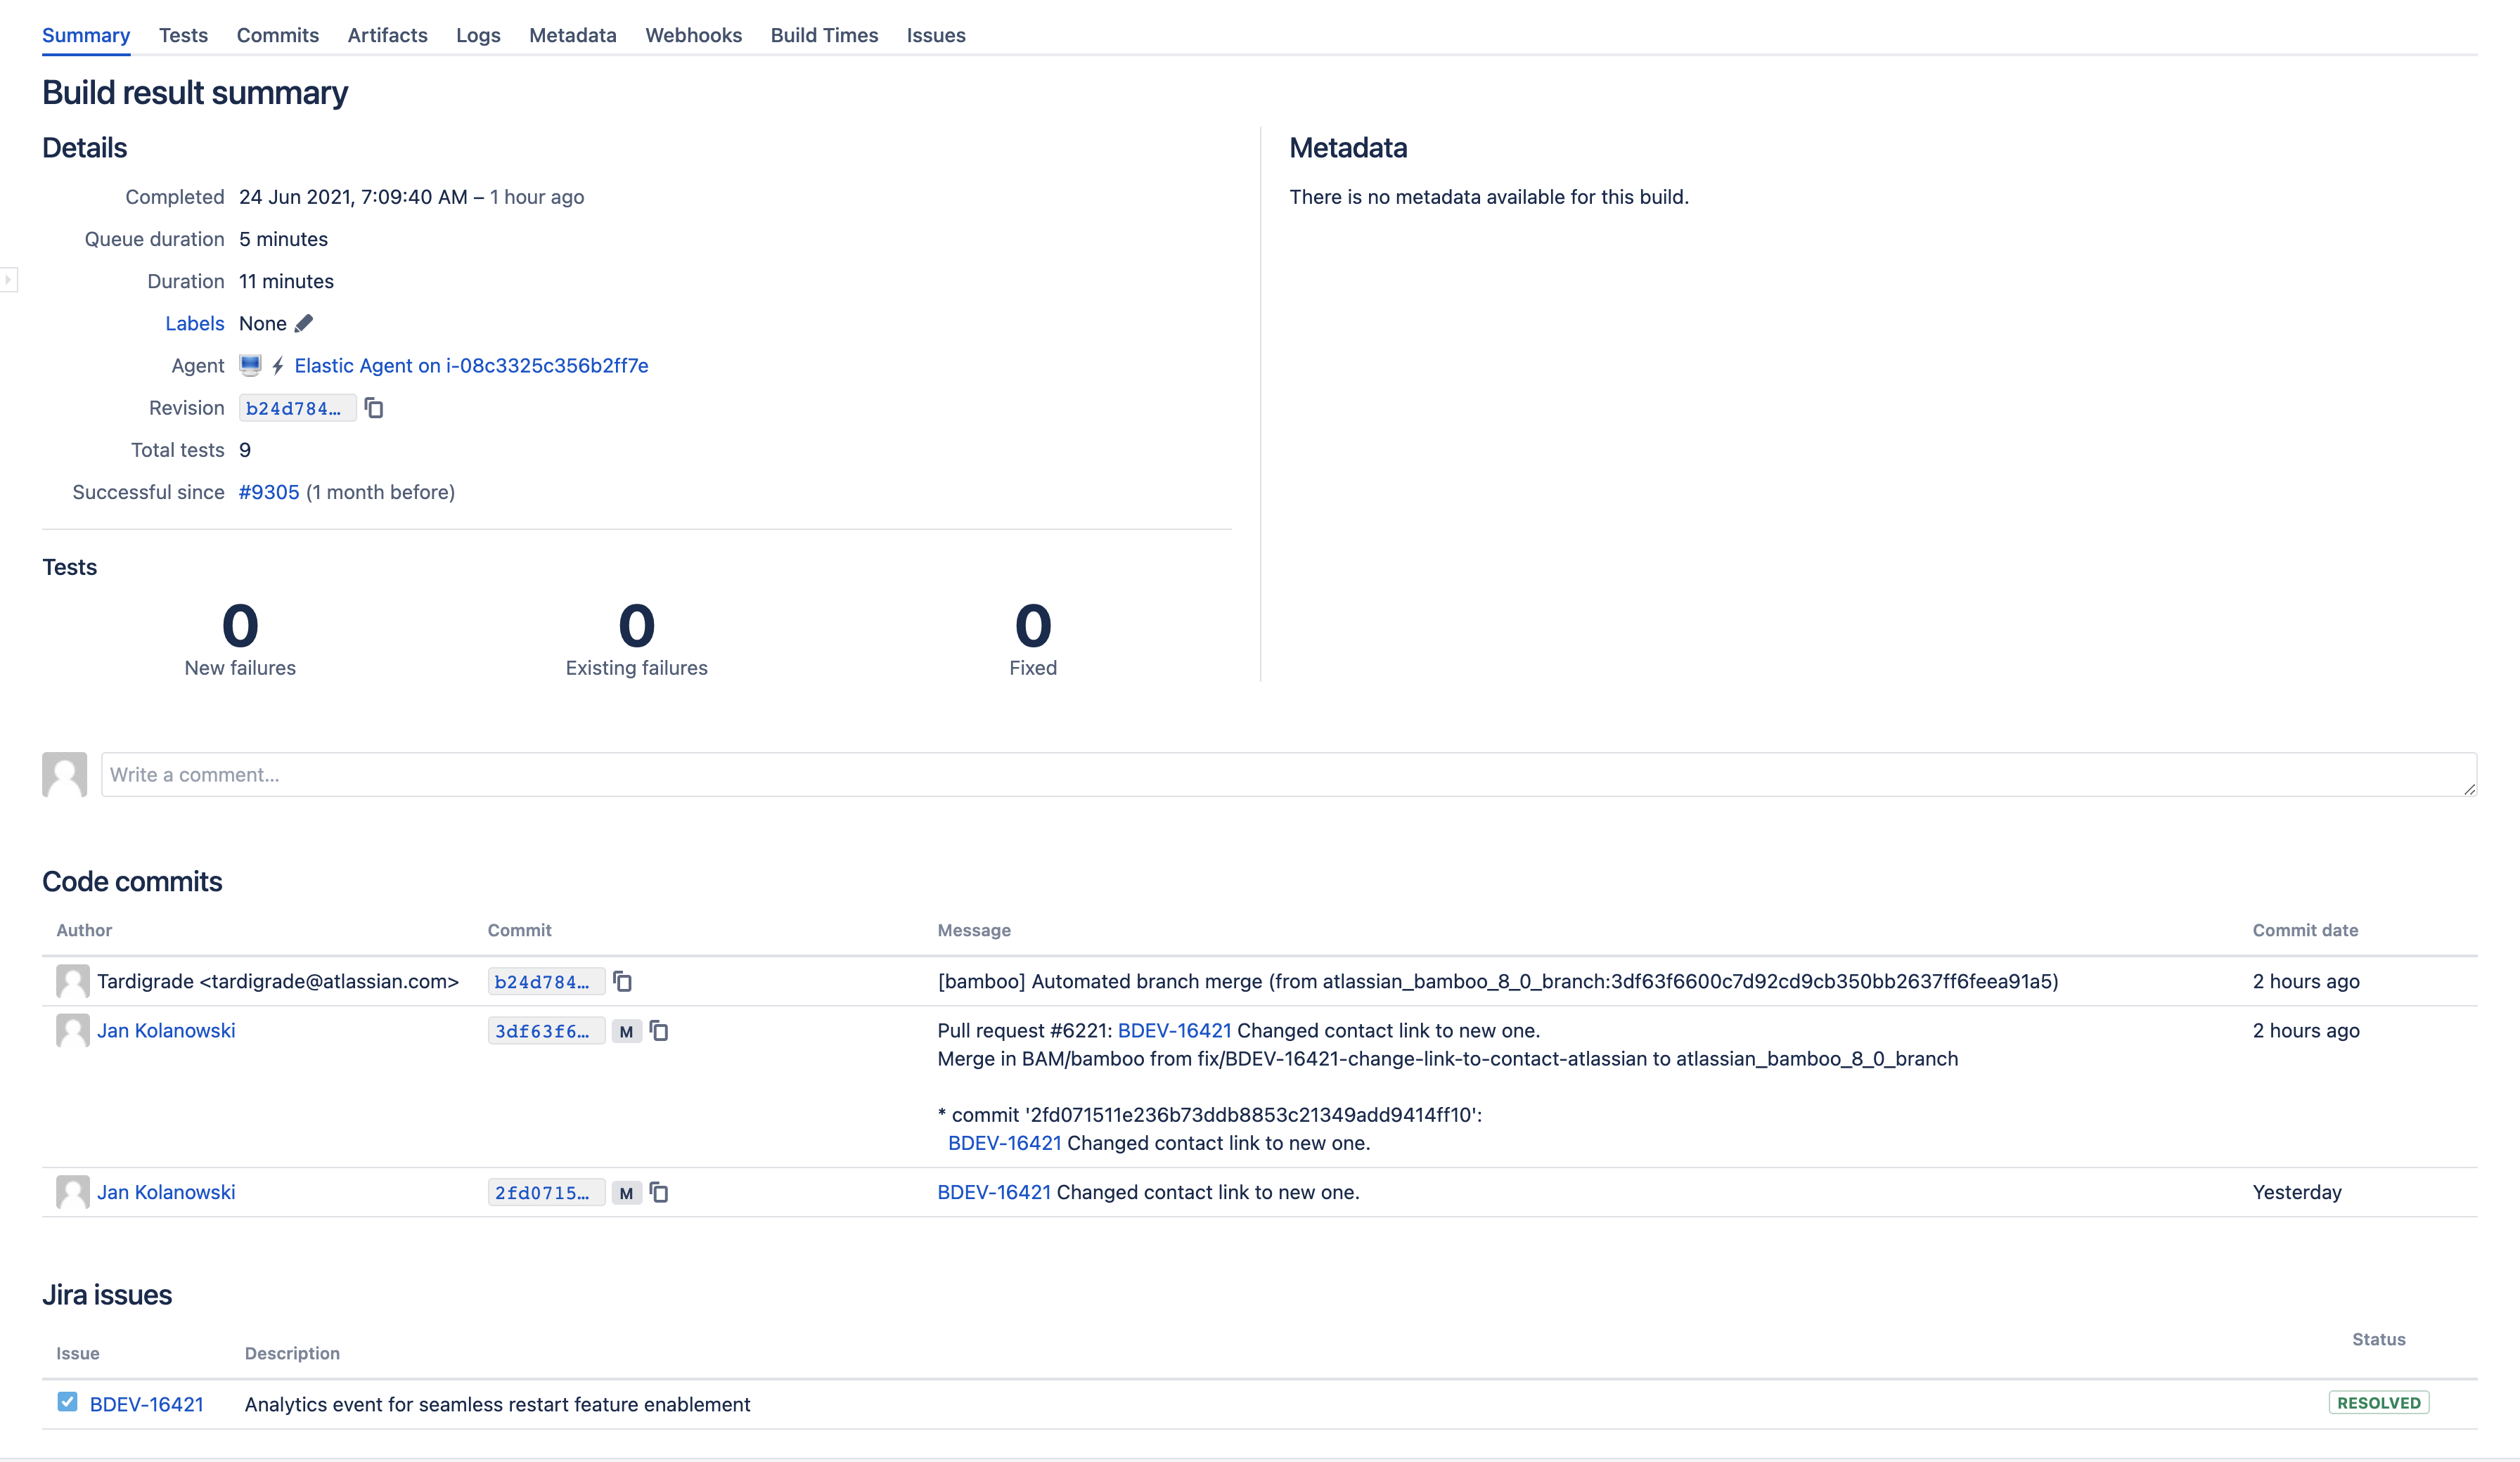 Jira issues in build summary view